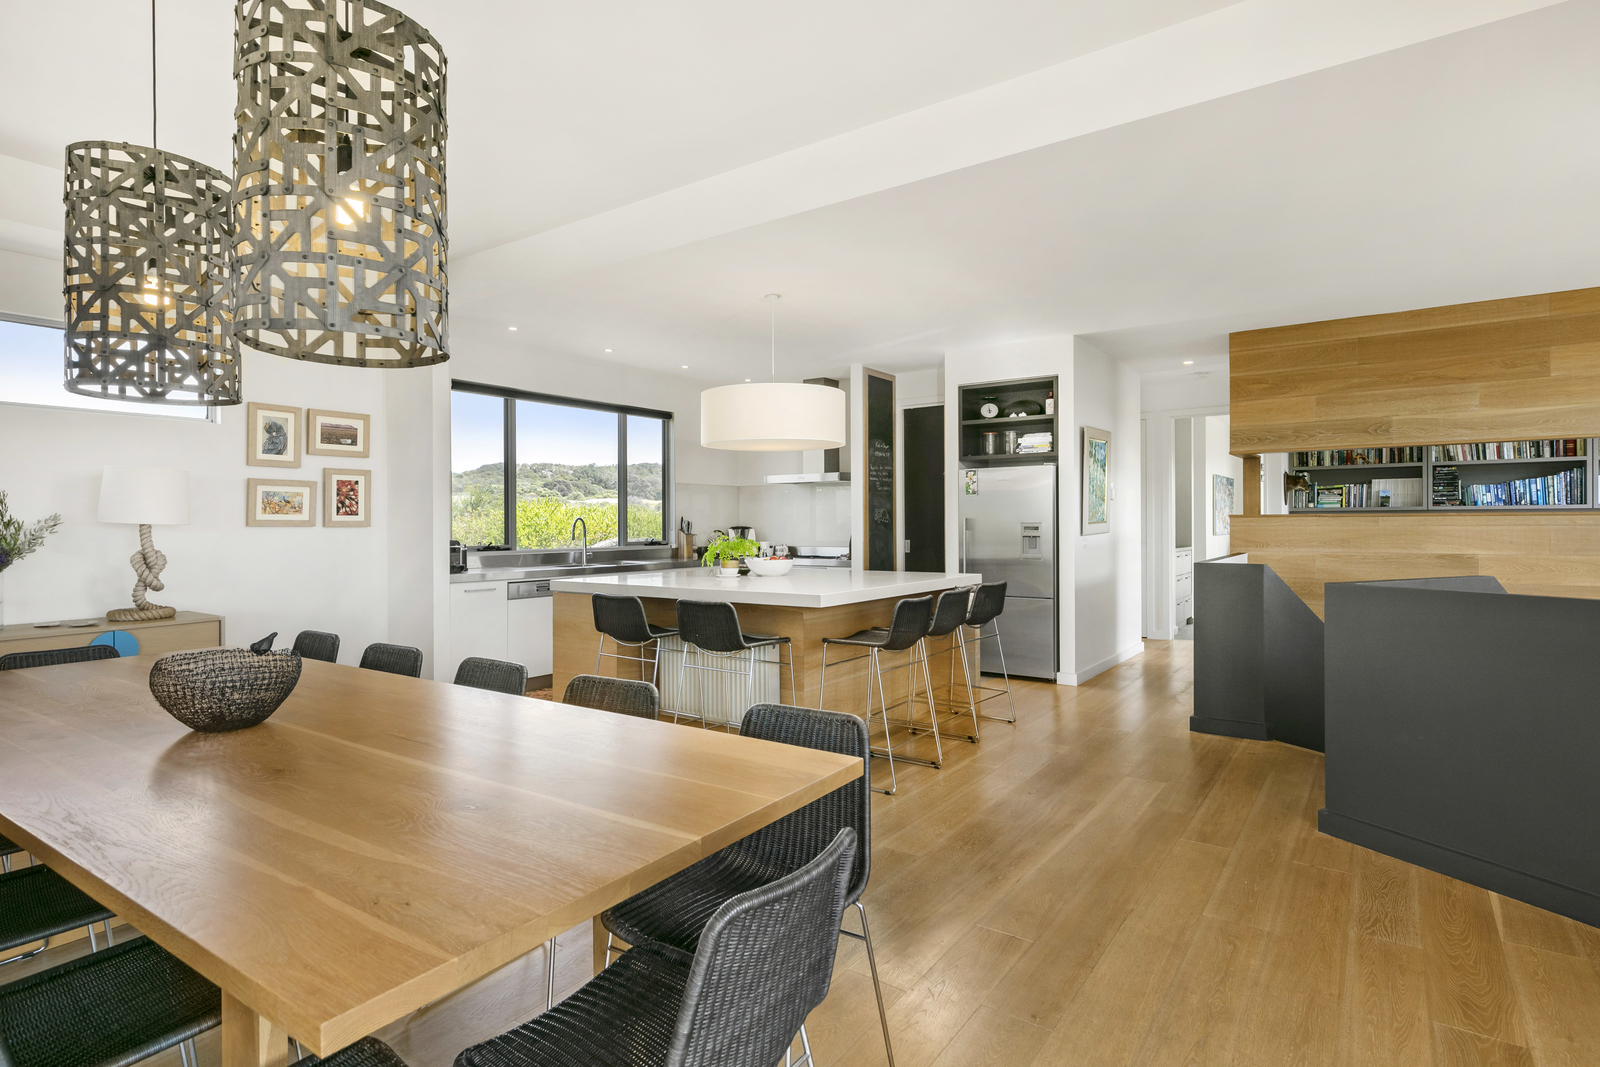 74 Normanby Road, Sorrento 3943 - Image 4